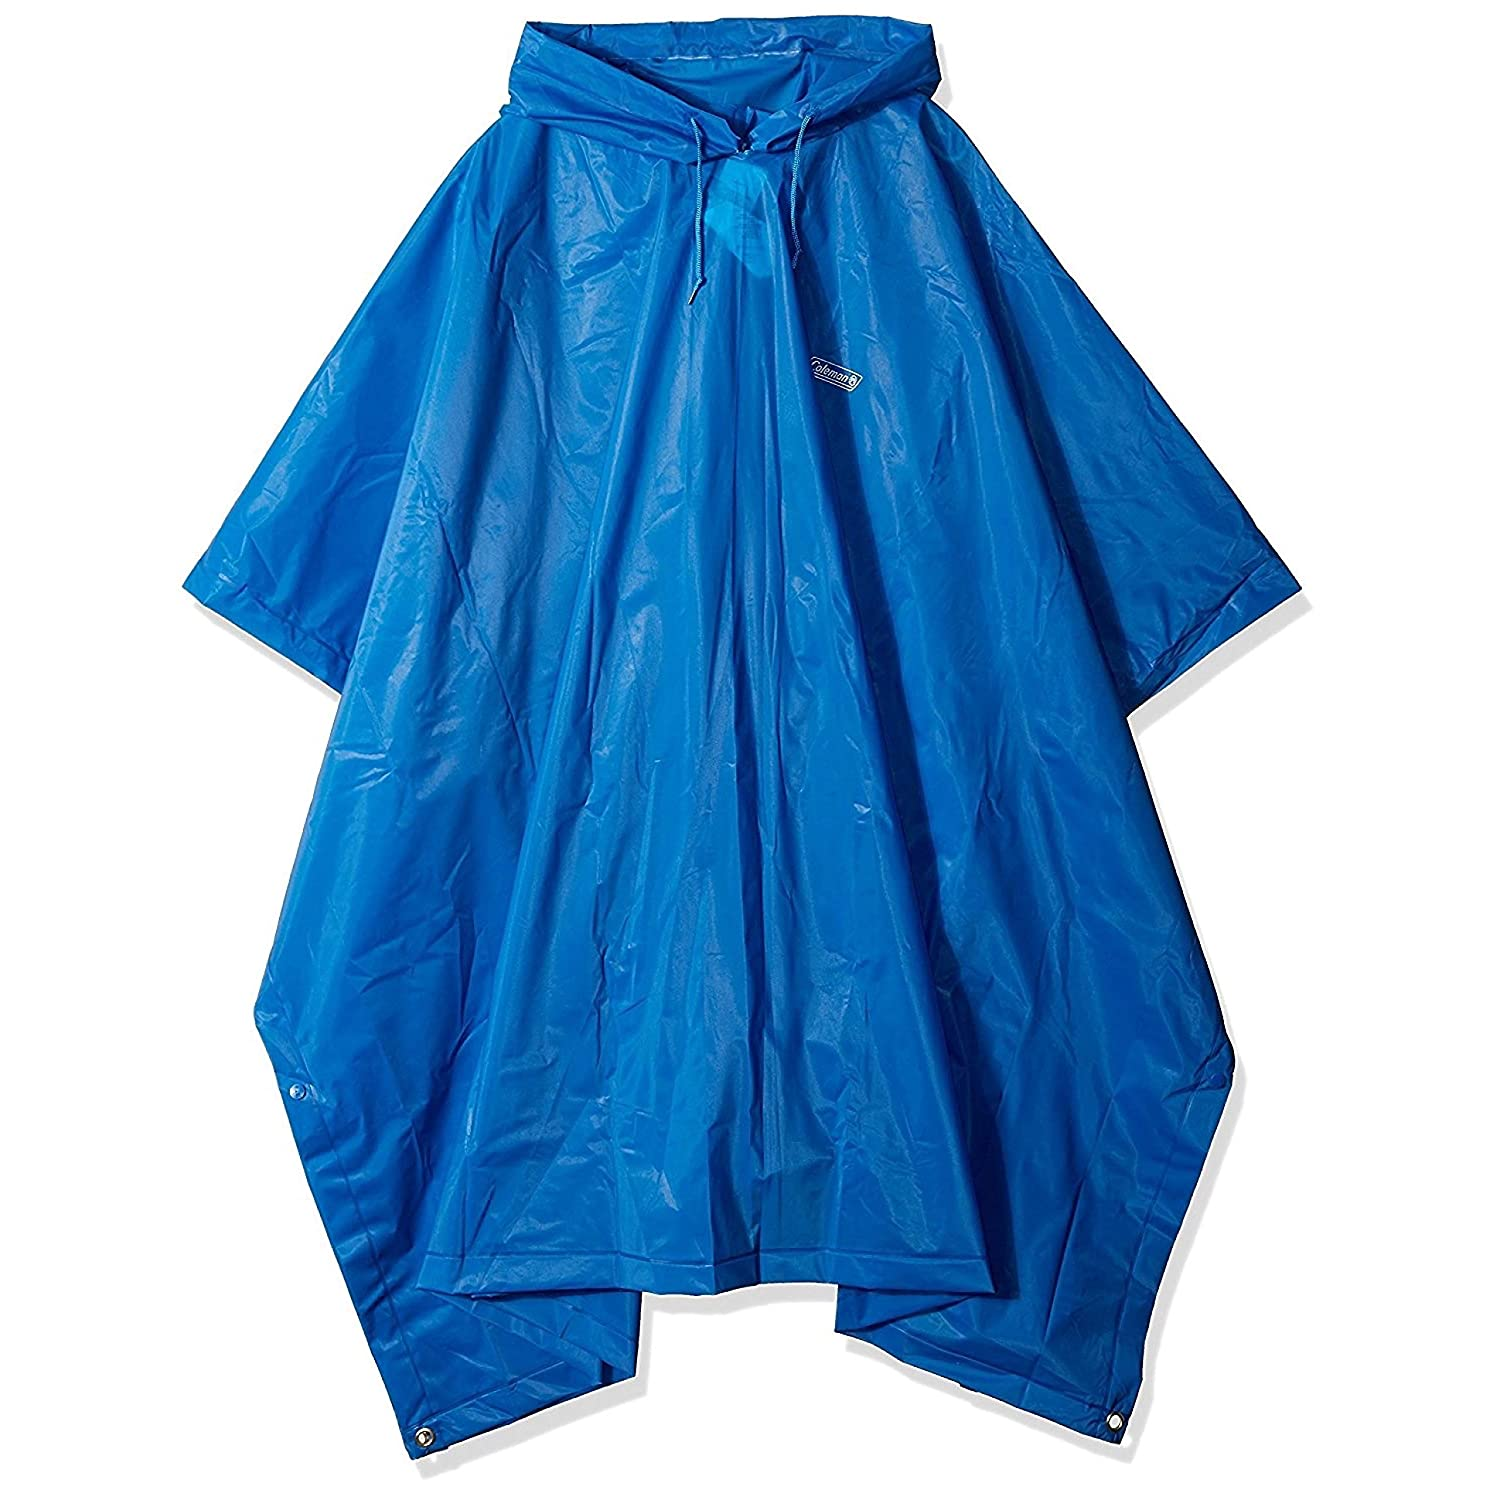 Coleman Rain Poncho | Adult Waterproof Poncho, One Size, Blue Coleman Company 2000014930